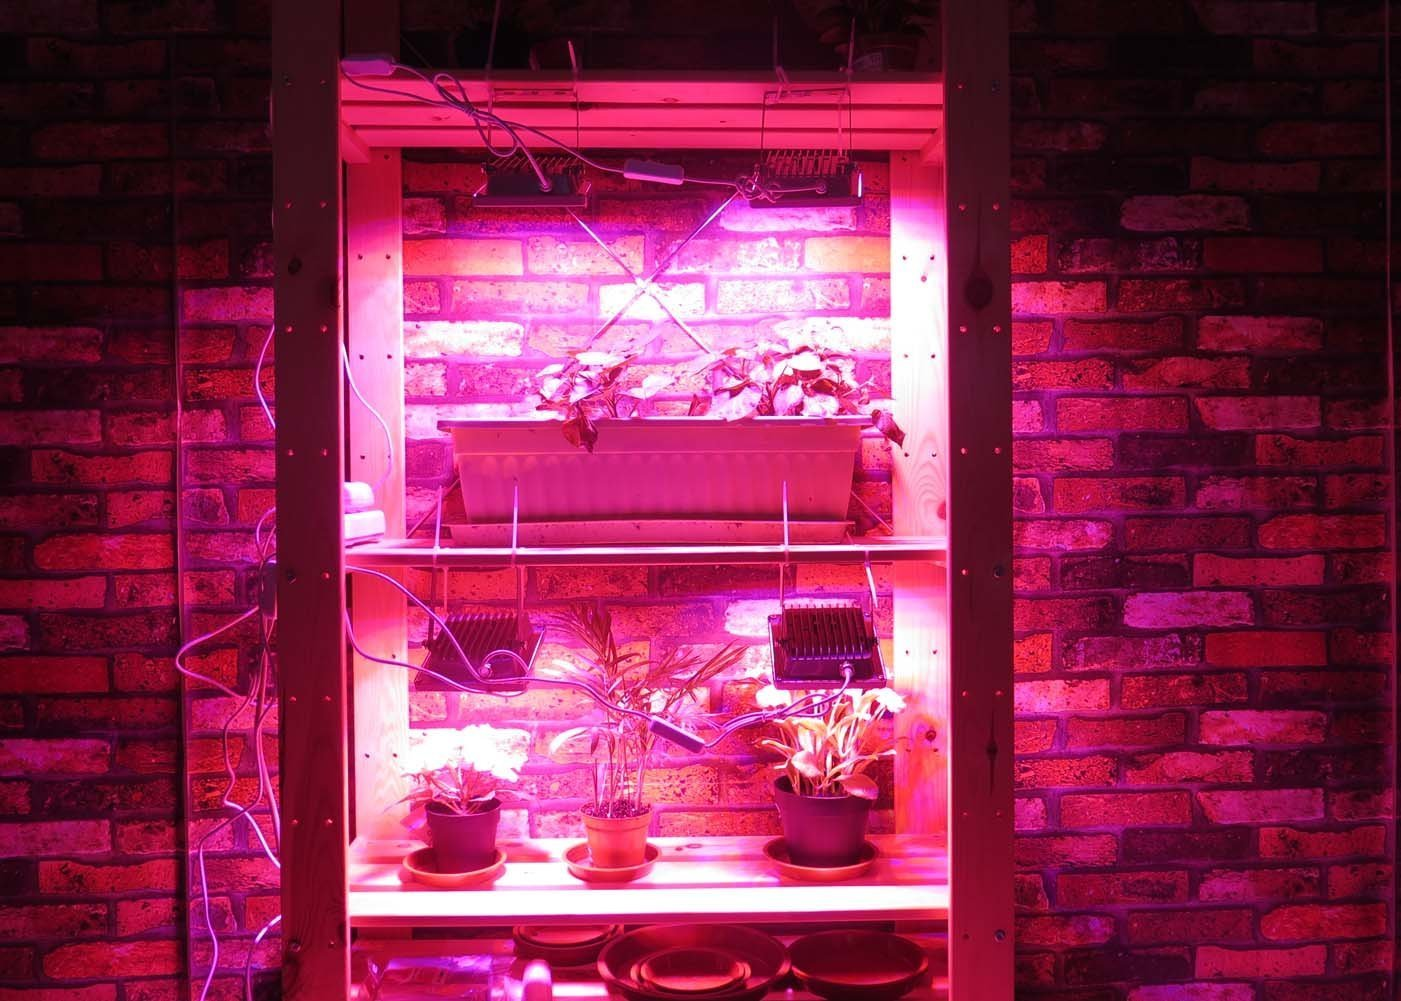 ACKE LED Grow Lights Full Spectrum,Plant Lights,Growing lamps 12W for Indoor plants,Hydropoincs by ACKE (Image #2)